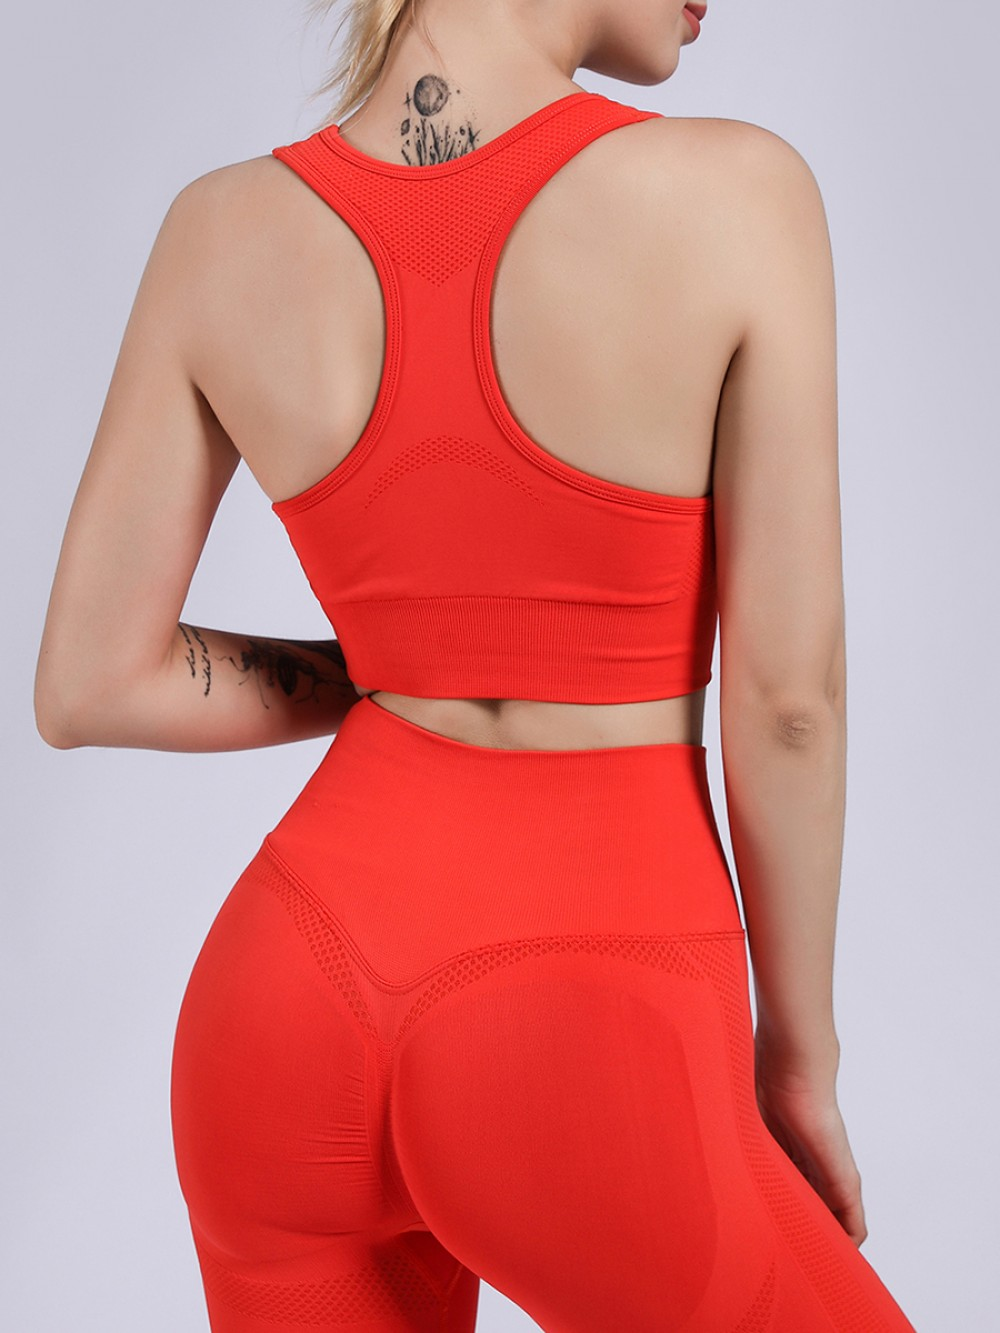 Red Yoga Two-Piece High Waist Removable Cups Latest Fashion